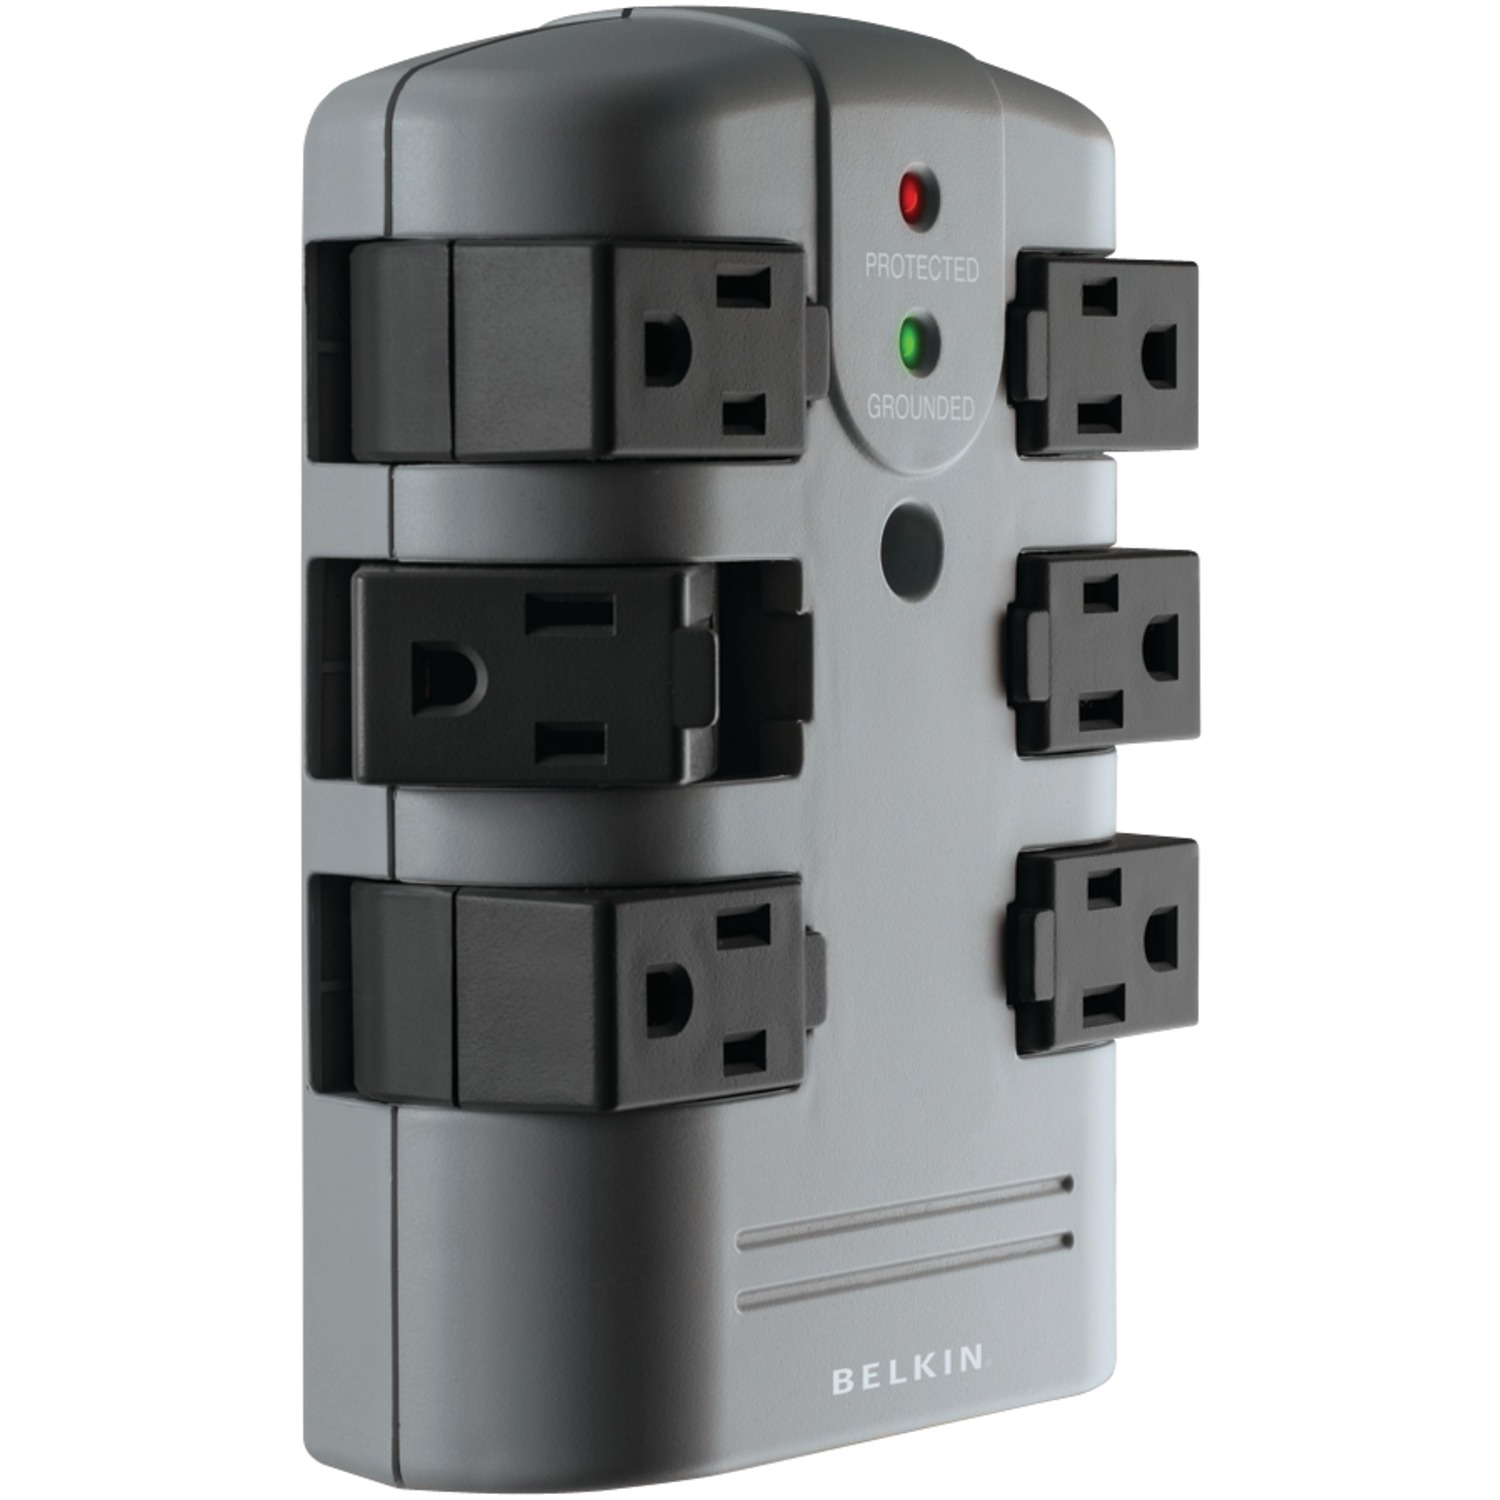 Image for Belkin Pivot Plug Surge Protector - Surge Protector from Circuit City